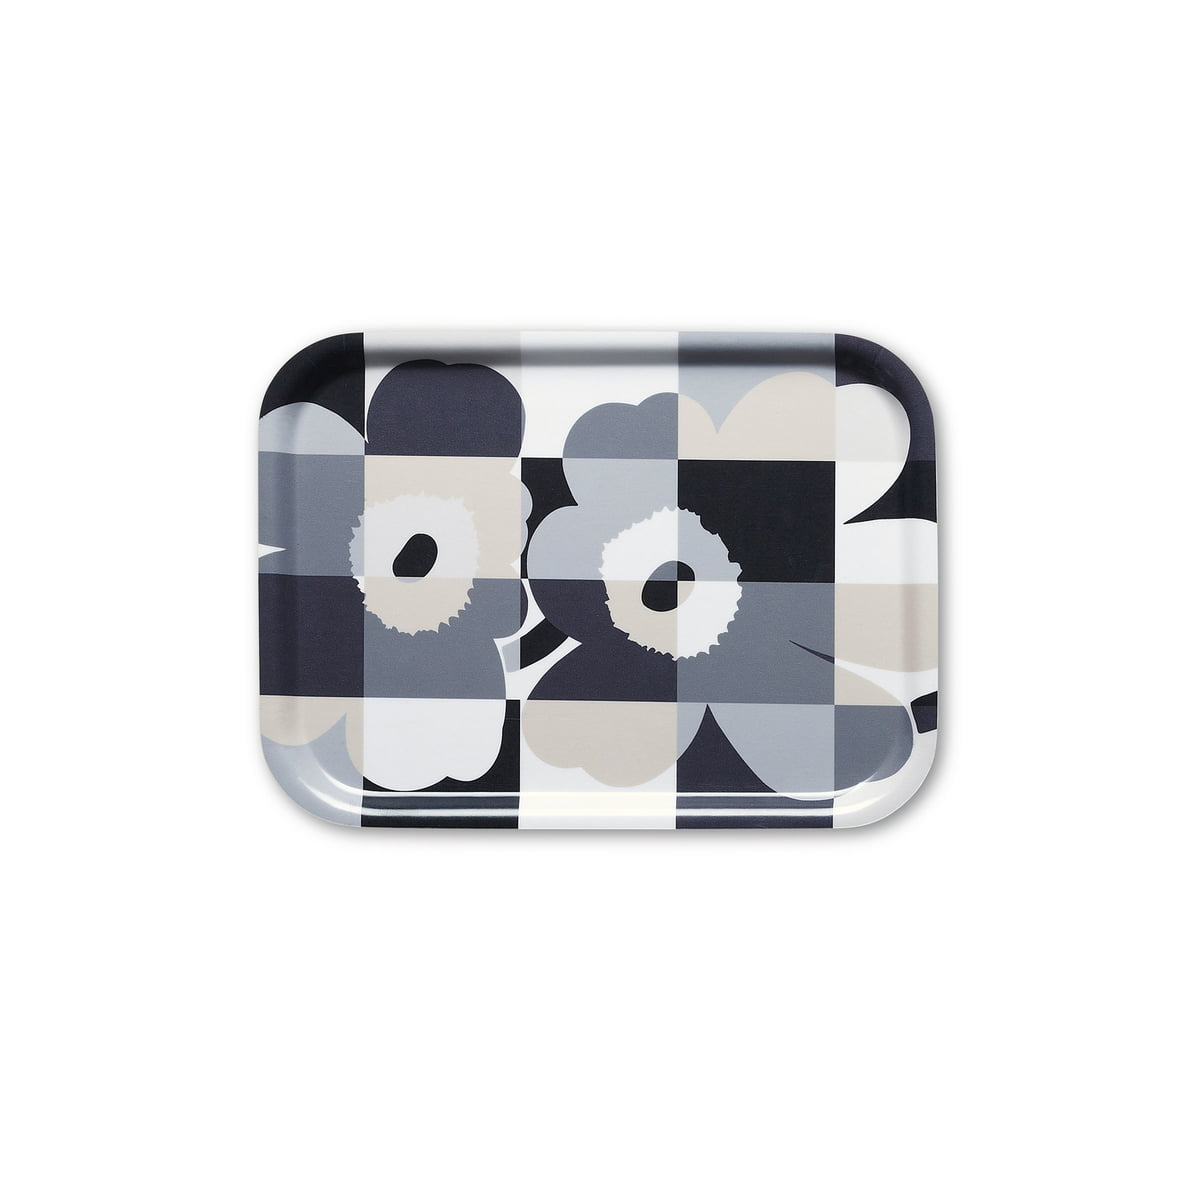 ruutu unikko tablett von marimekko im shop. Black Bedroom Furniture Sets. Home Design Ideas